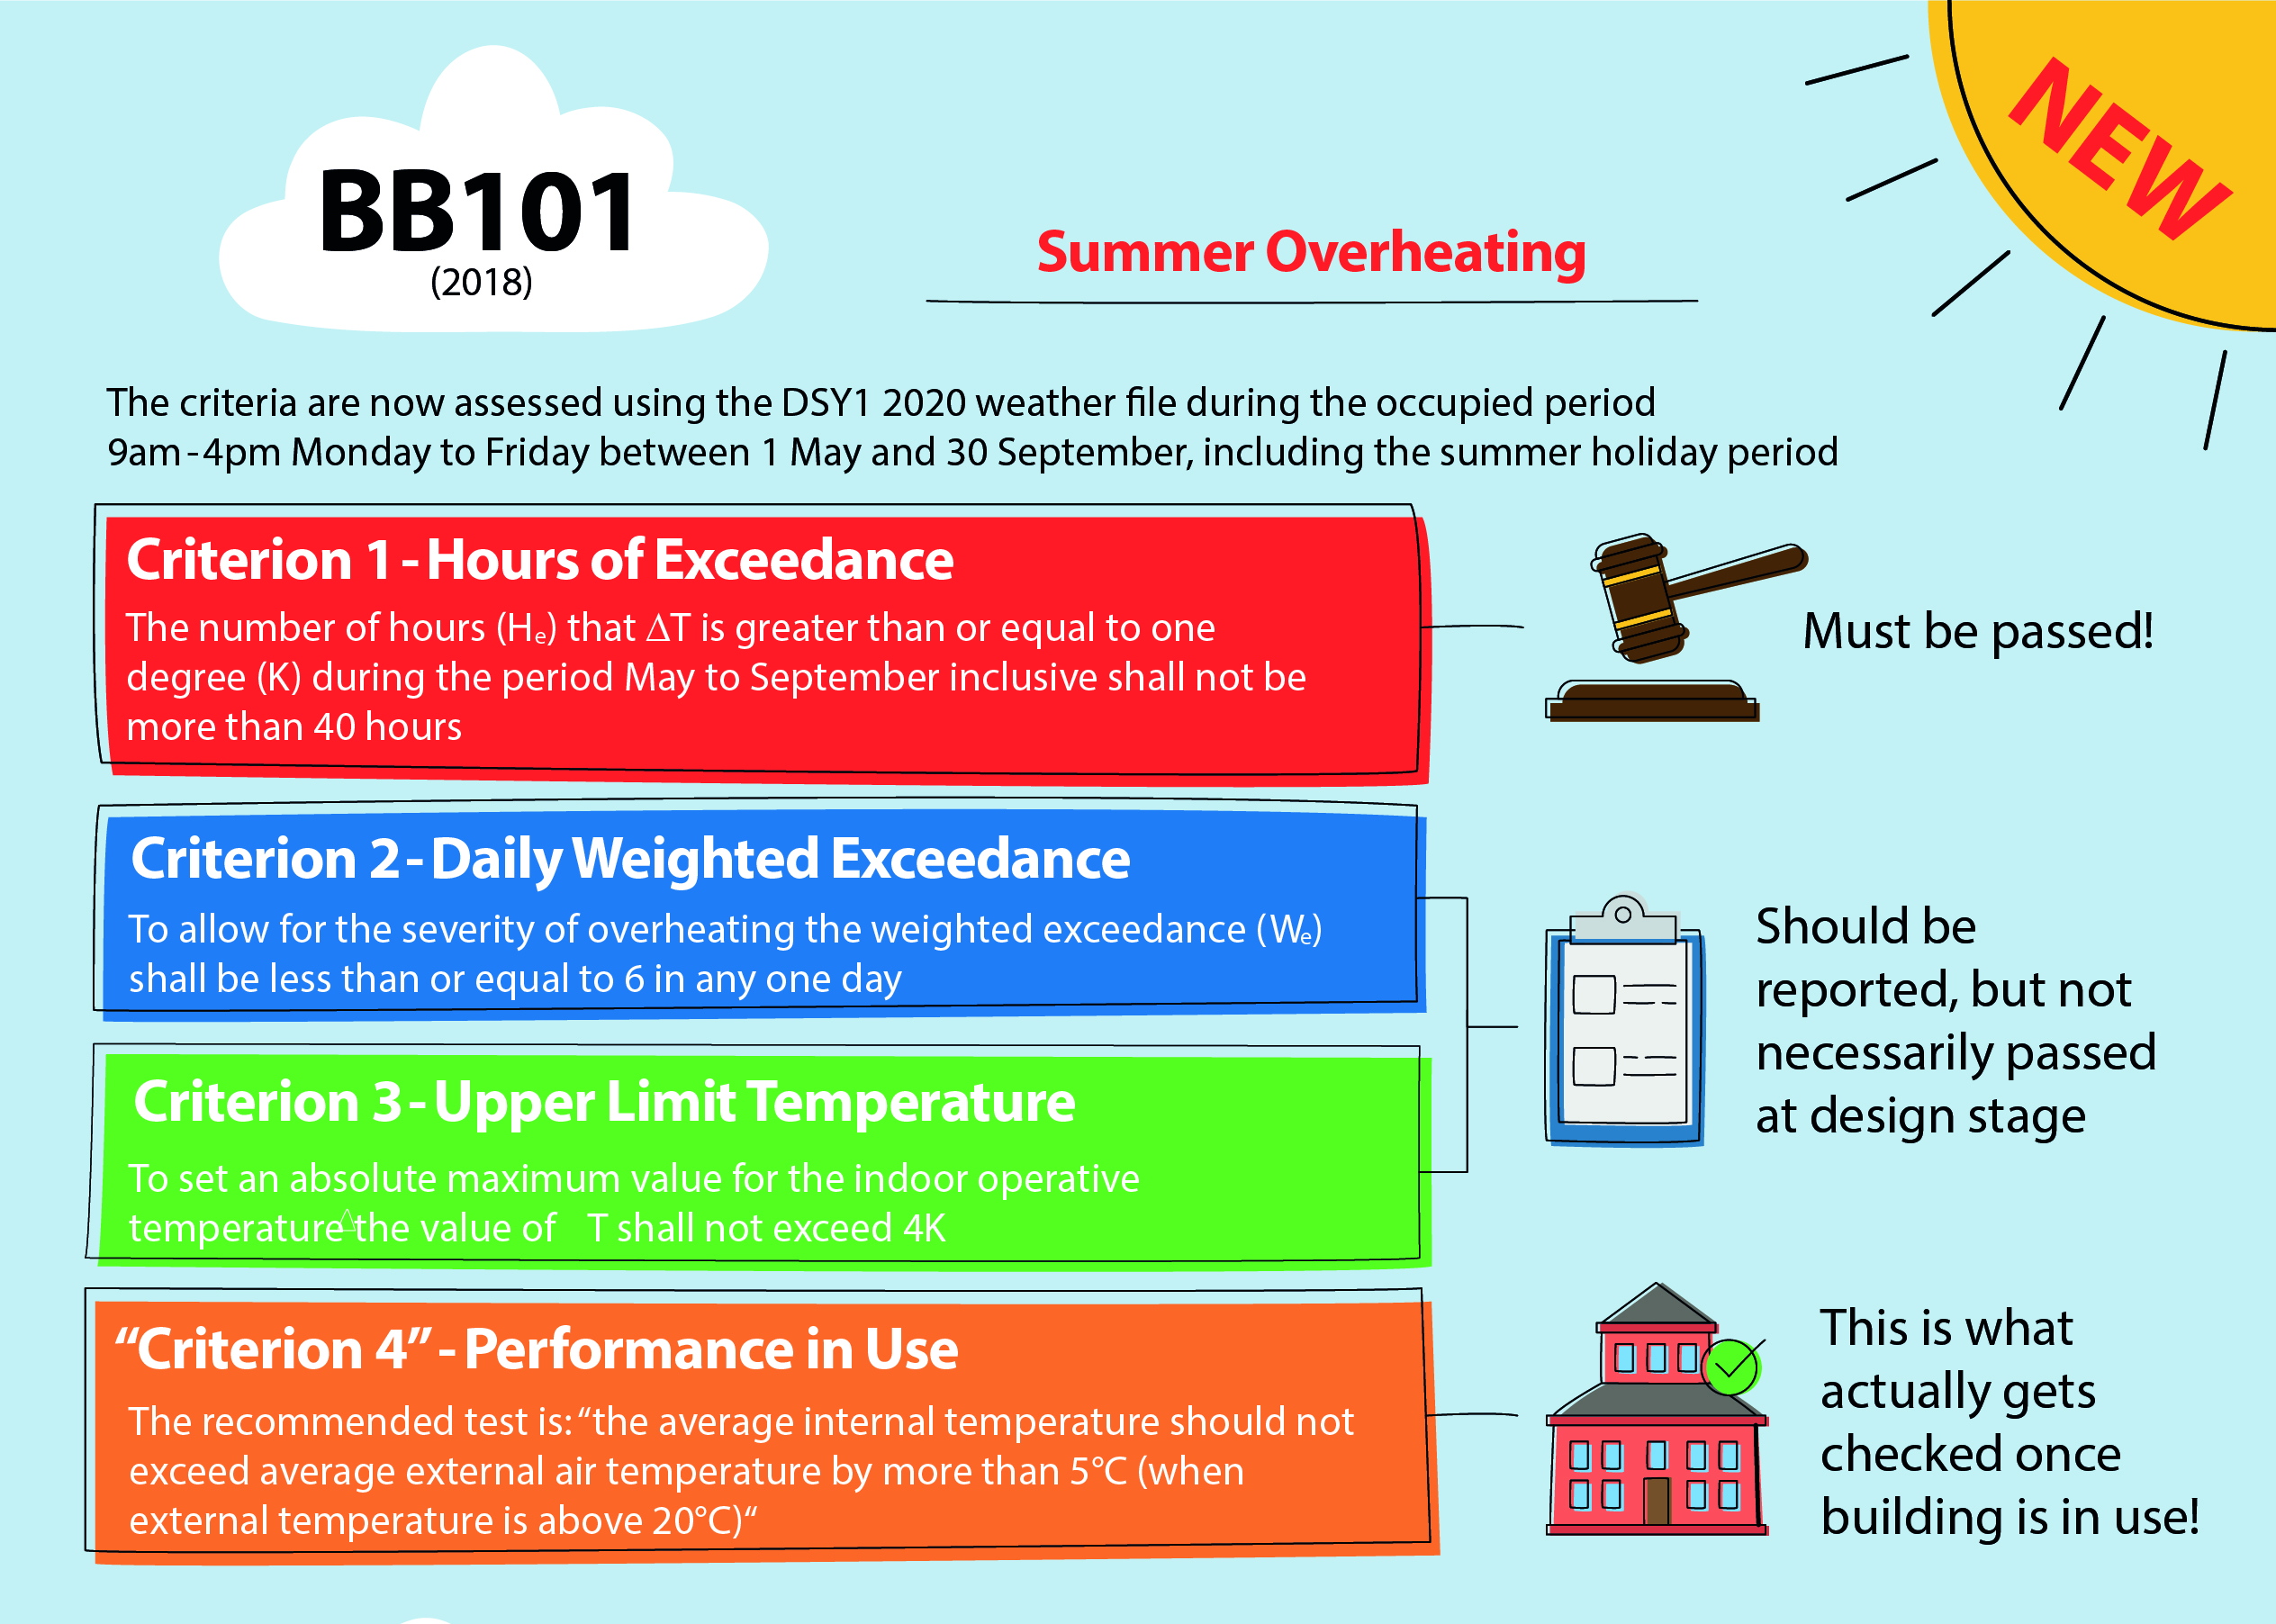 Summer overheating BB101 document